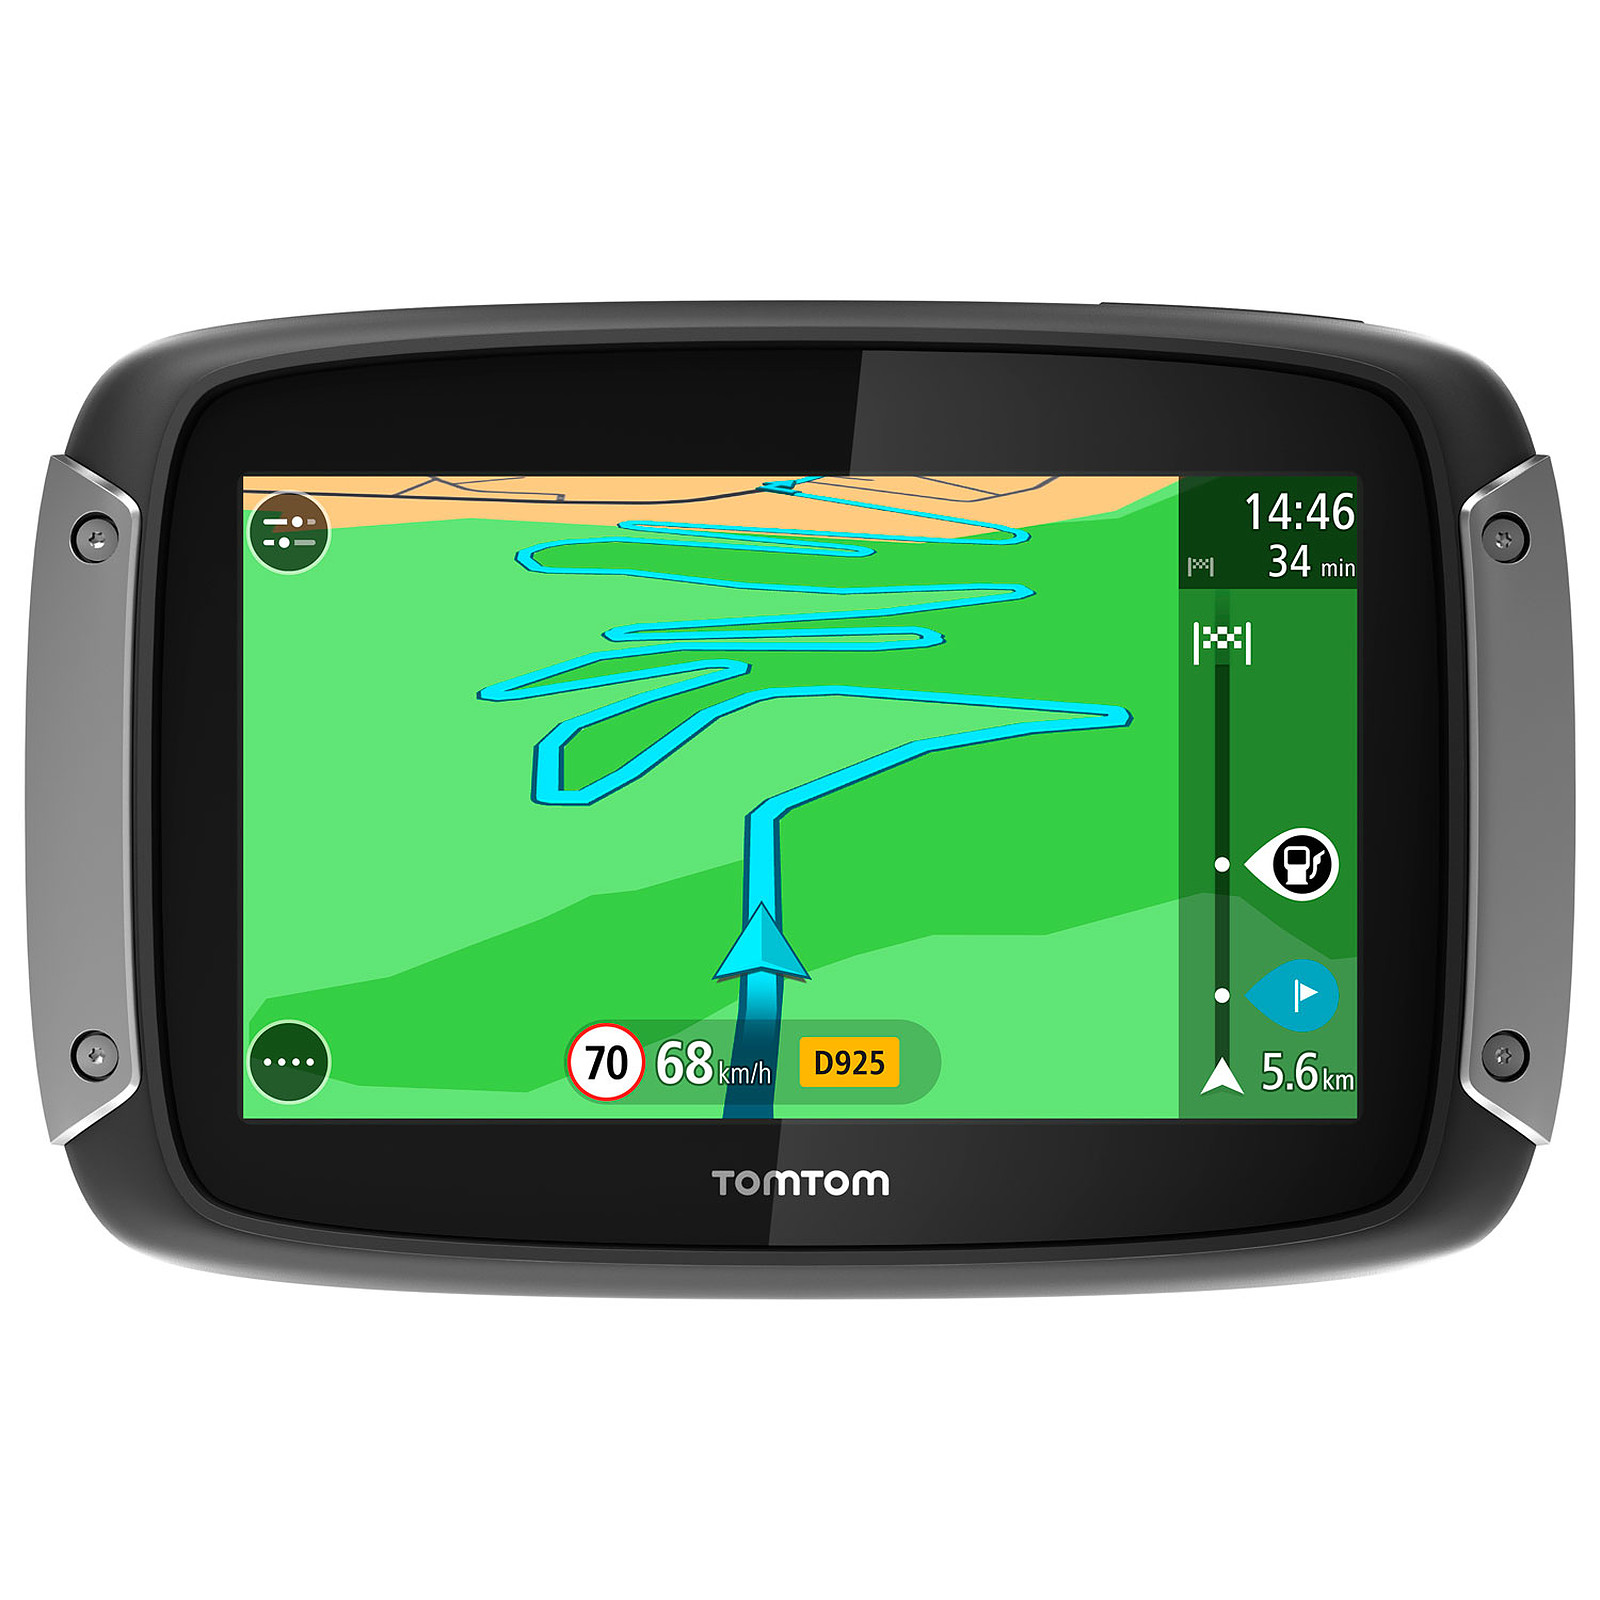 tomtom rider 400 gps tomtom sur. Black Bedroom Furniture Sets. Home Design Ideas